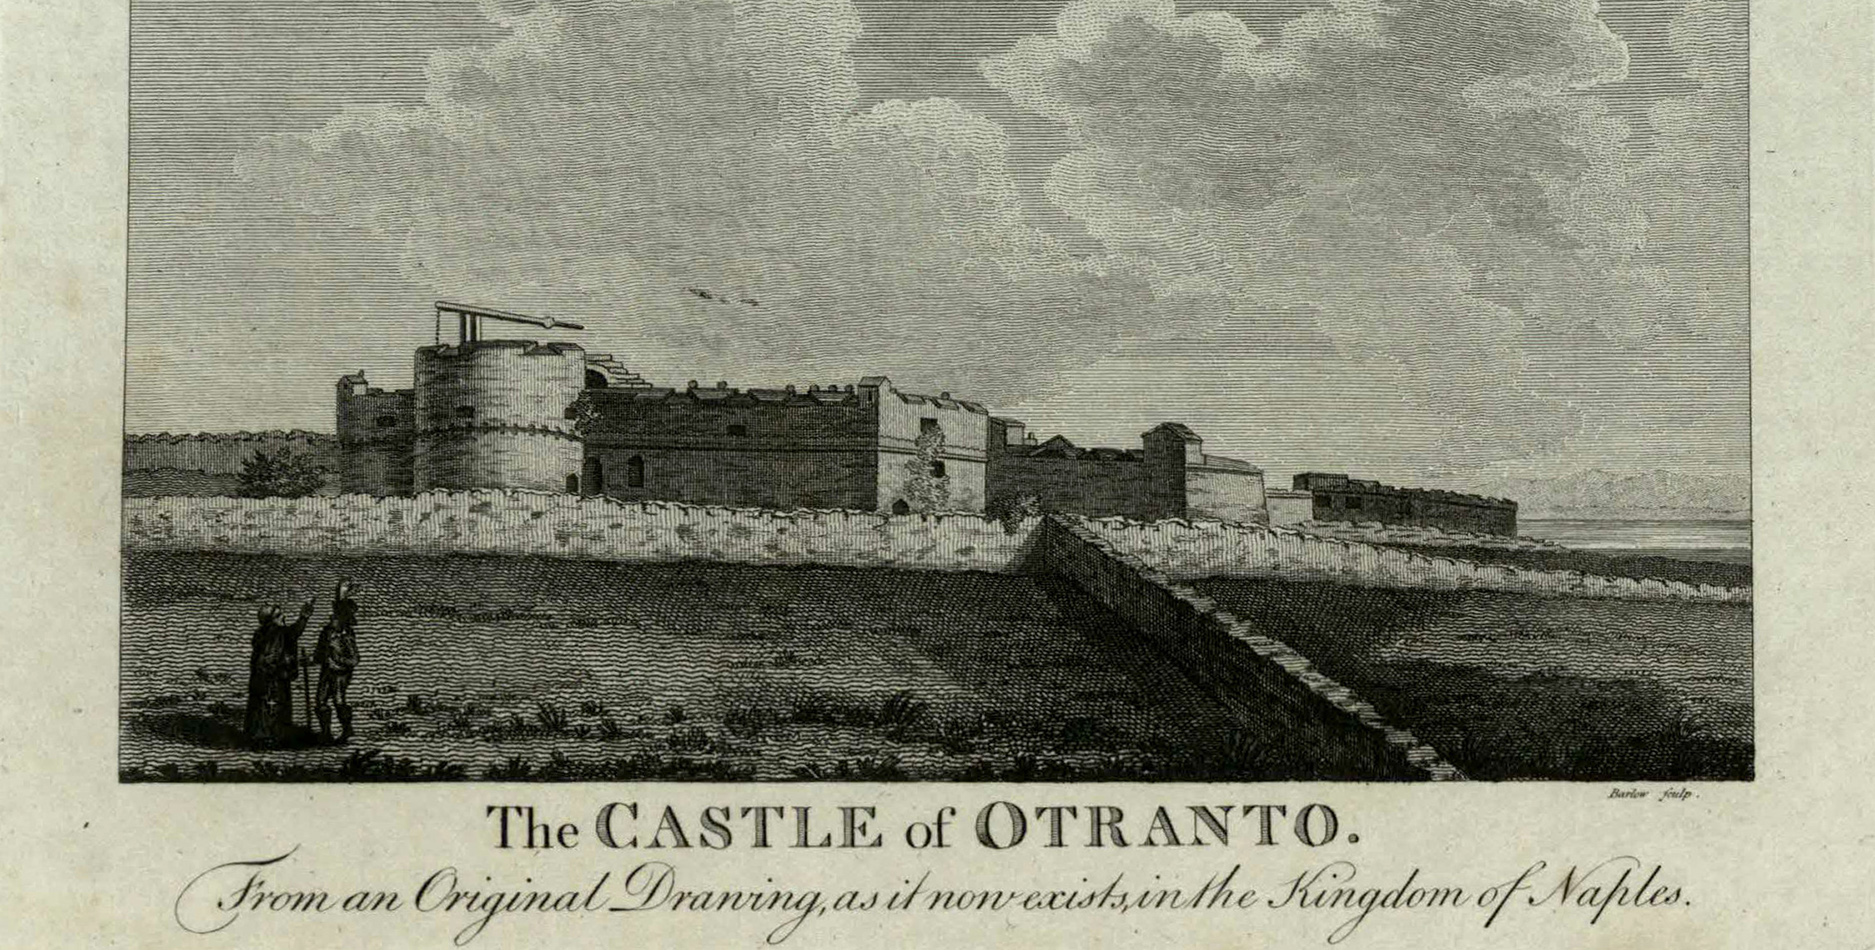 https://standrewsrarebooks.files.wordpress.com/2015/02/castle-of-otranto_banner_1.jpg